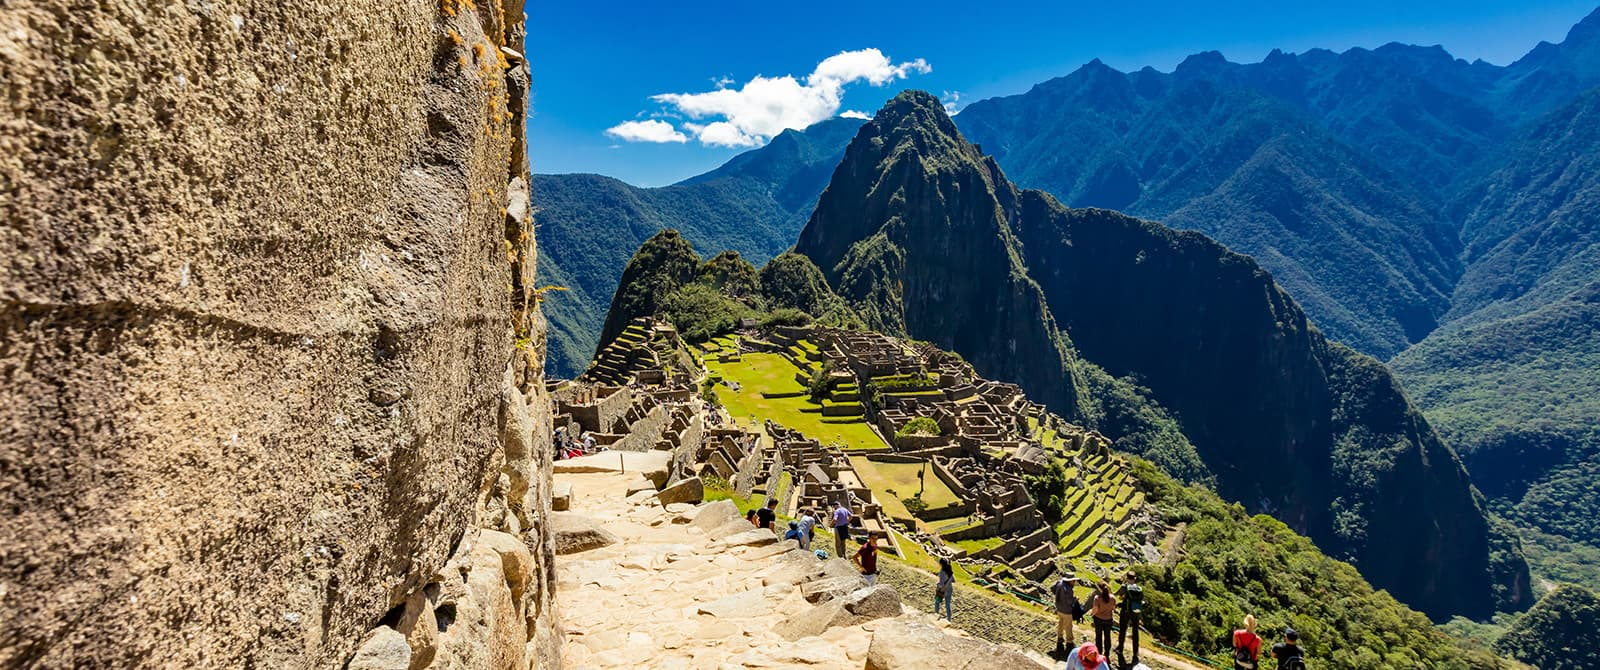 machu picchu 10 days in peru